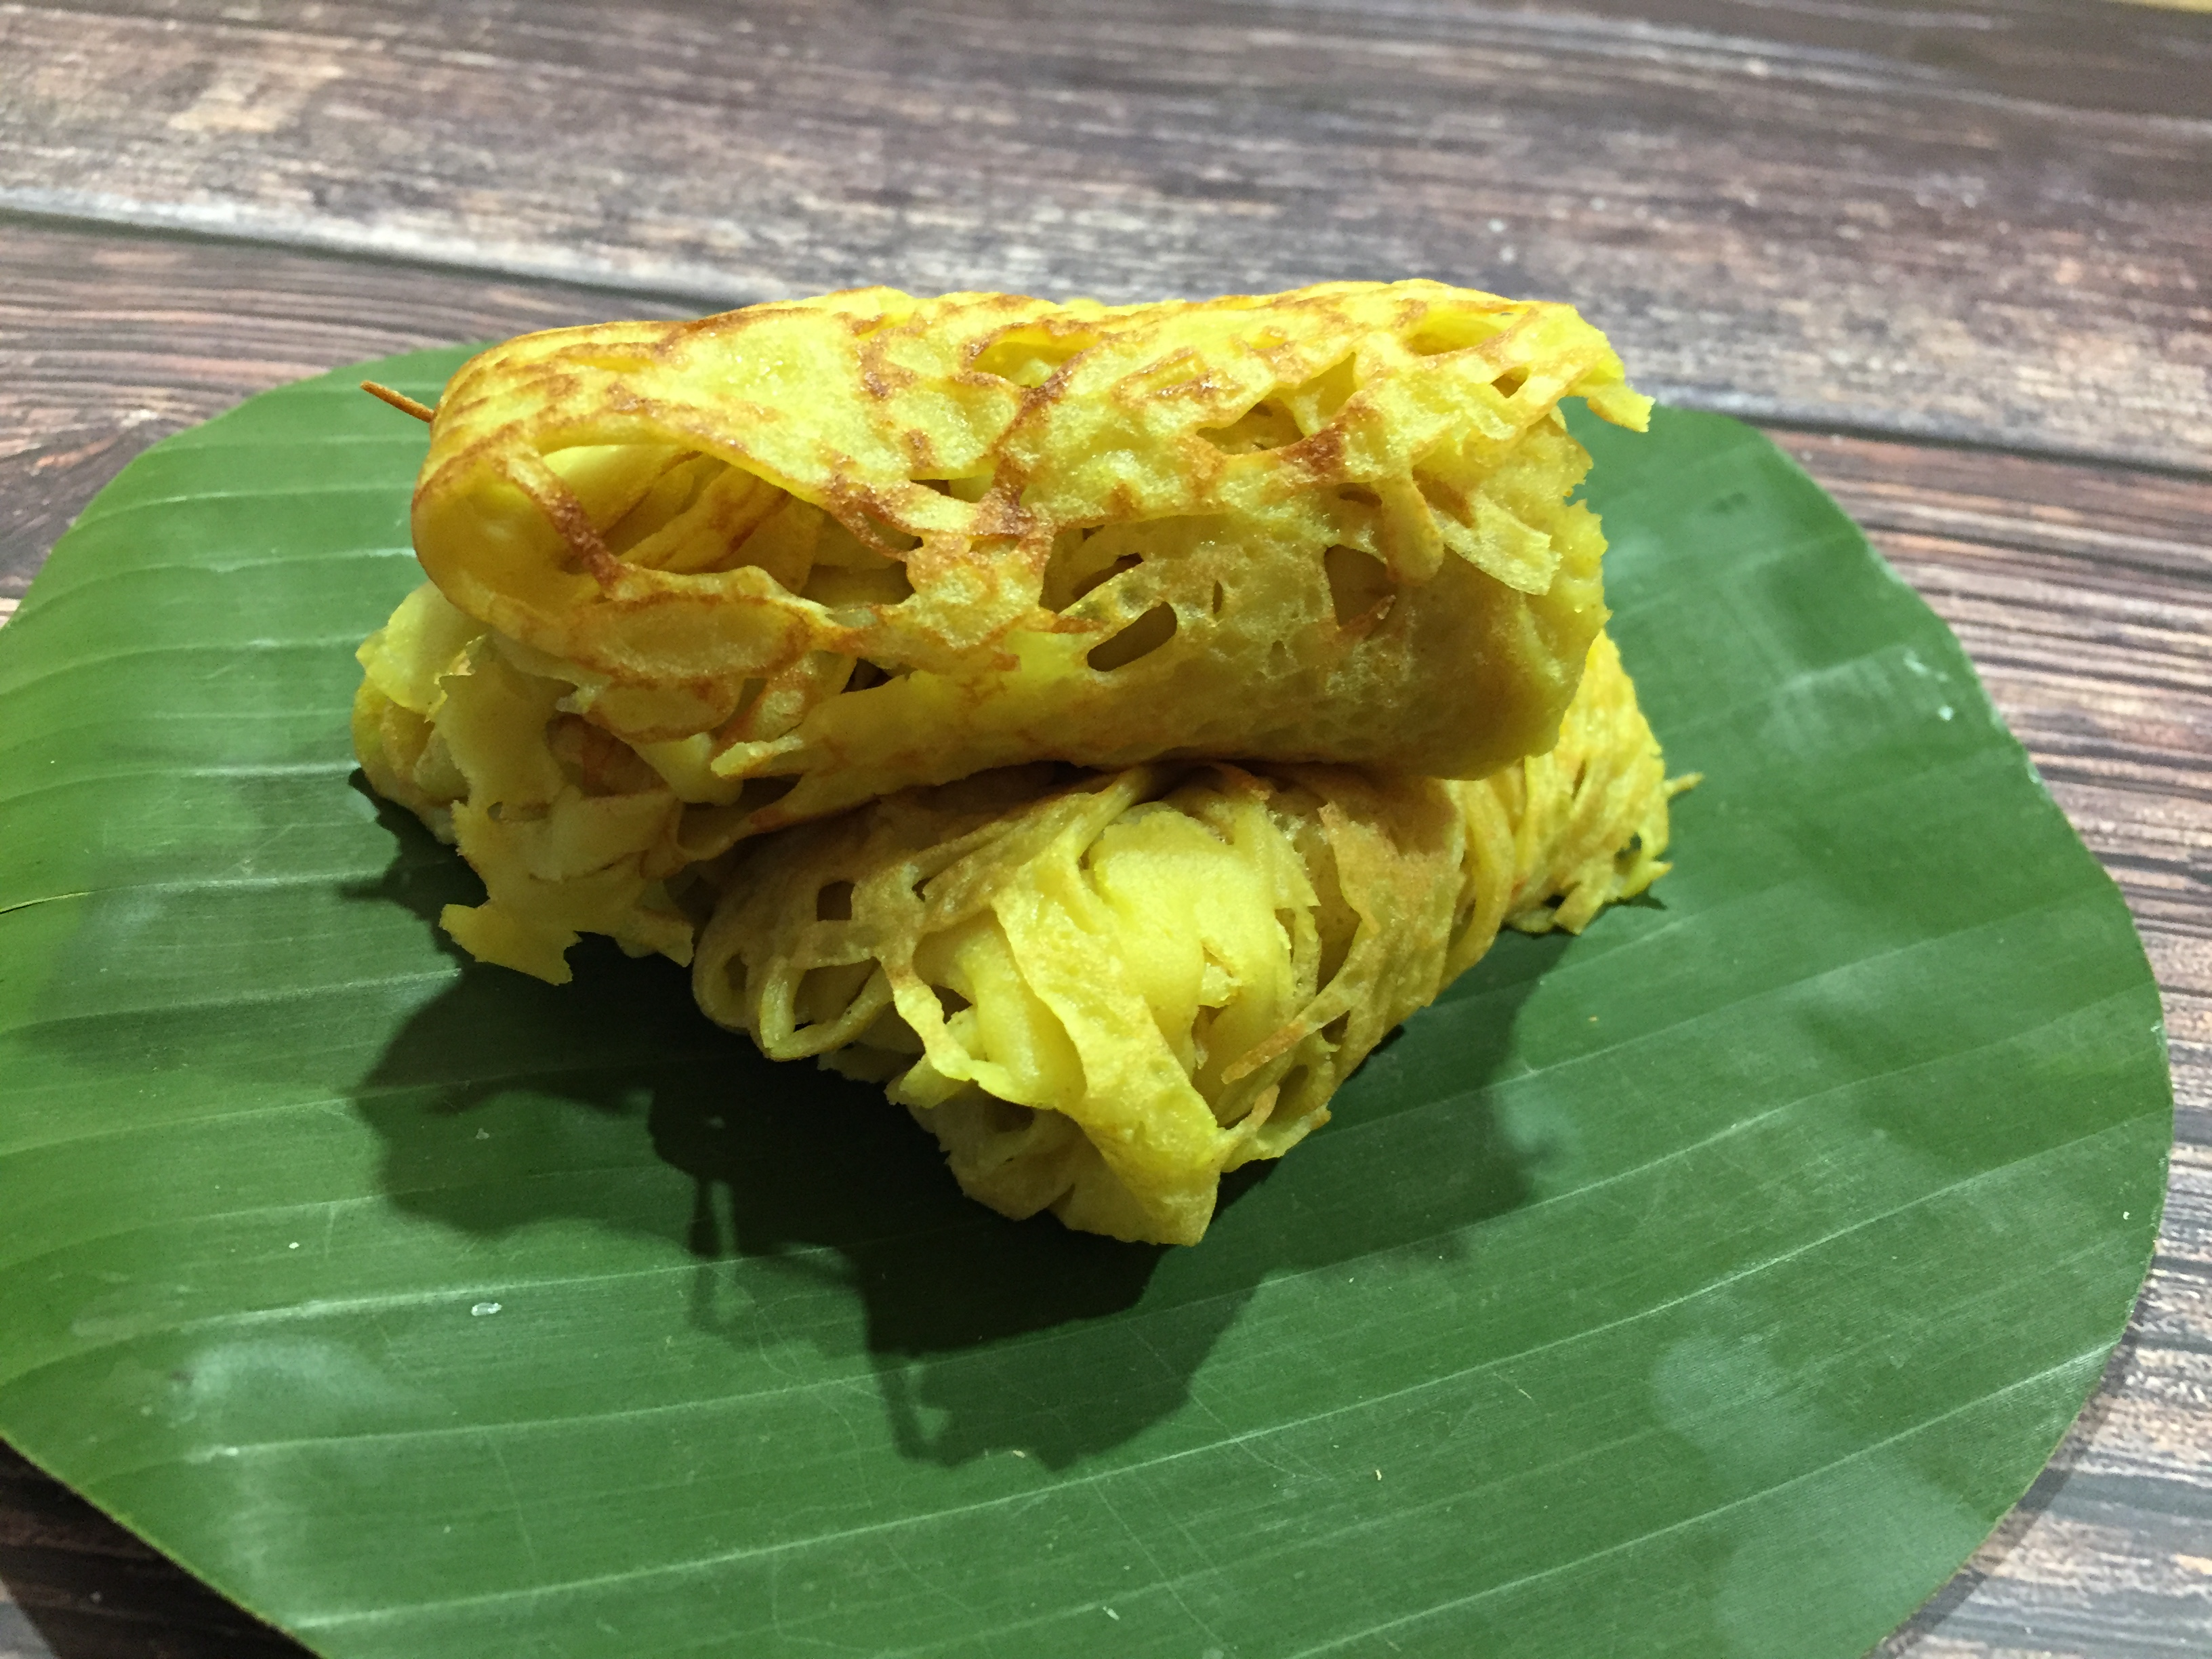 roti jala - malaysian net pancakes cooked and rolled served on a banana leaf